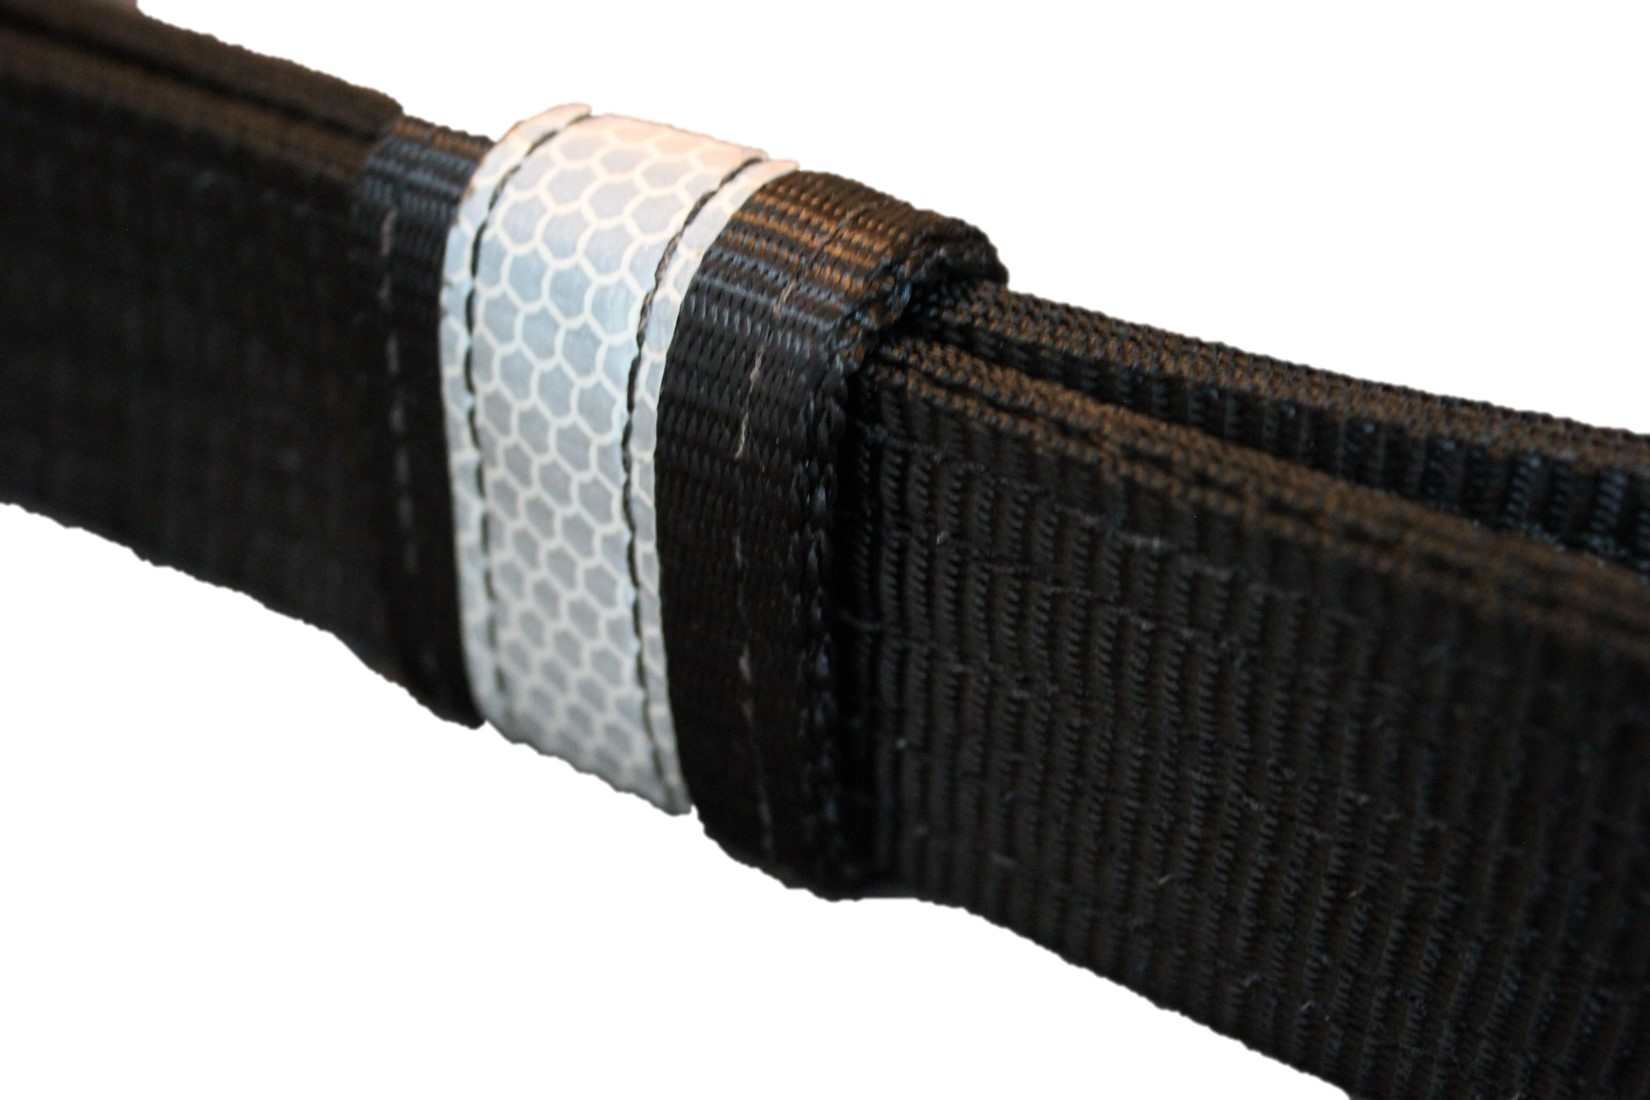 Picture of the I C Brindle Survivor strop adjustment woggle on a white background